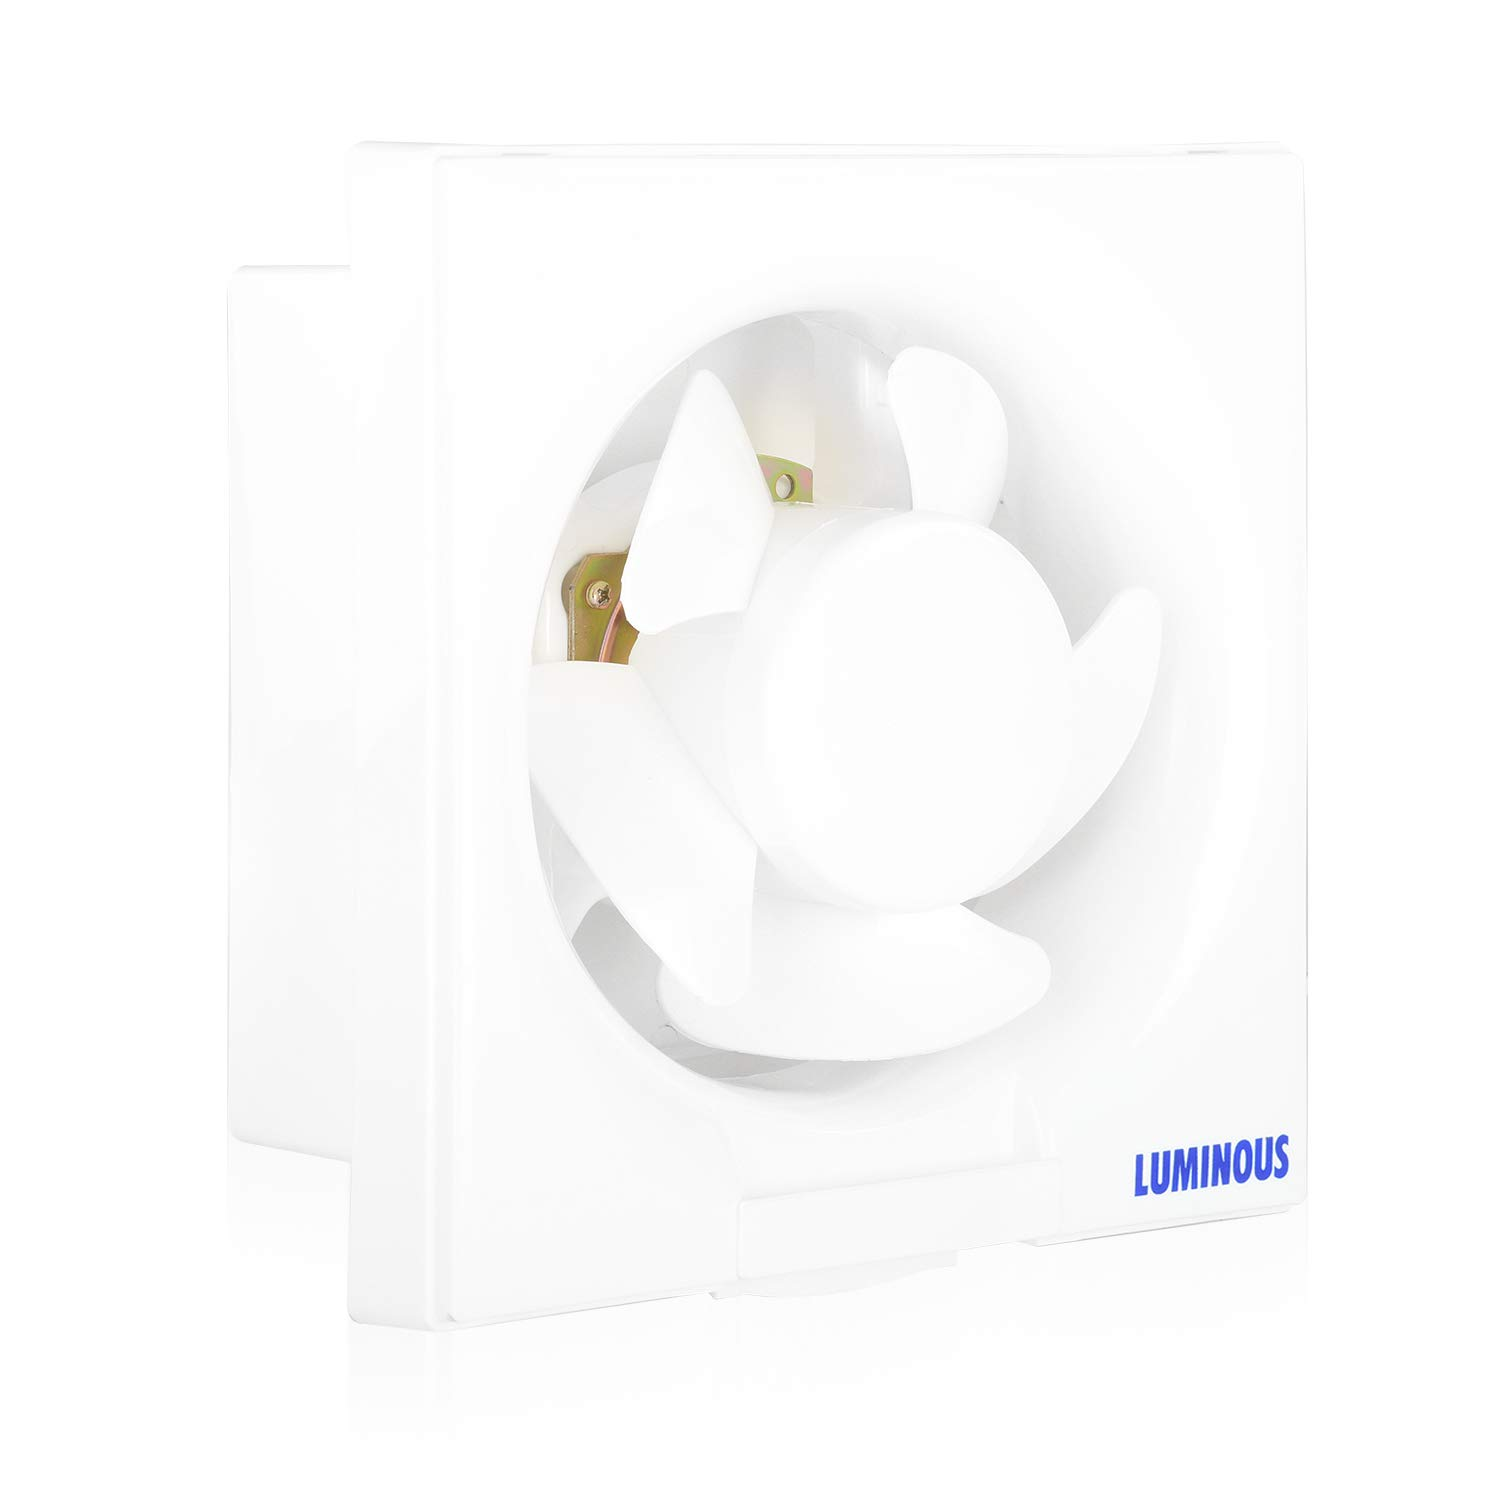 Luminous Vento Deluxe 6 Inch (150 mm) Blade Size Exhaust Fan for Kitchen, Bathroom, and Office (White)